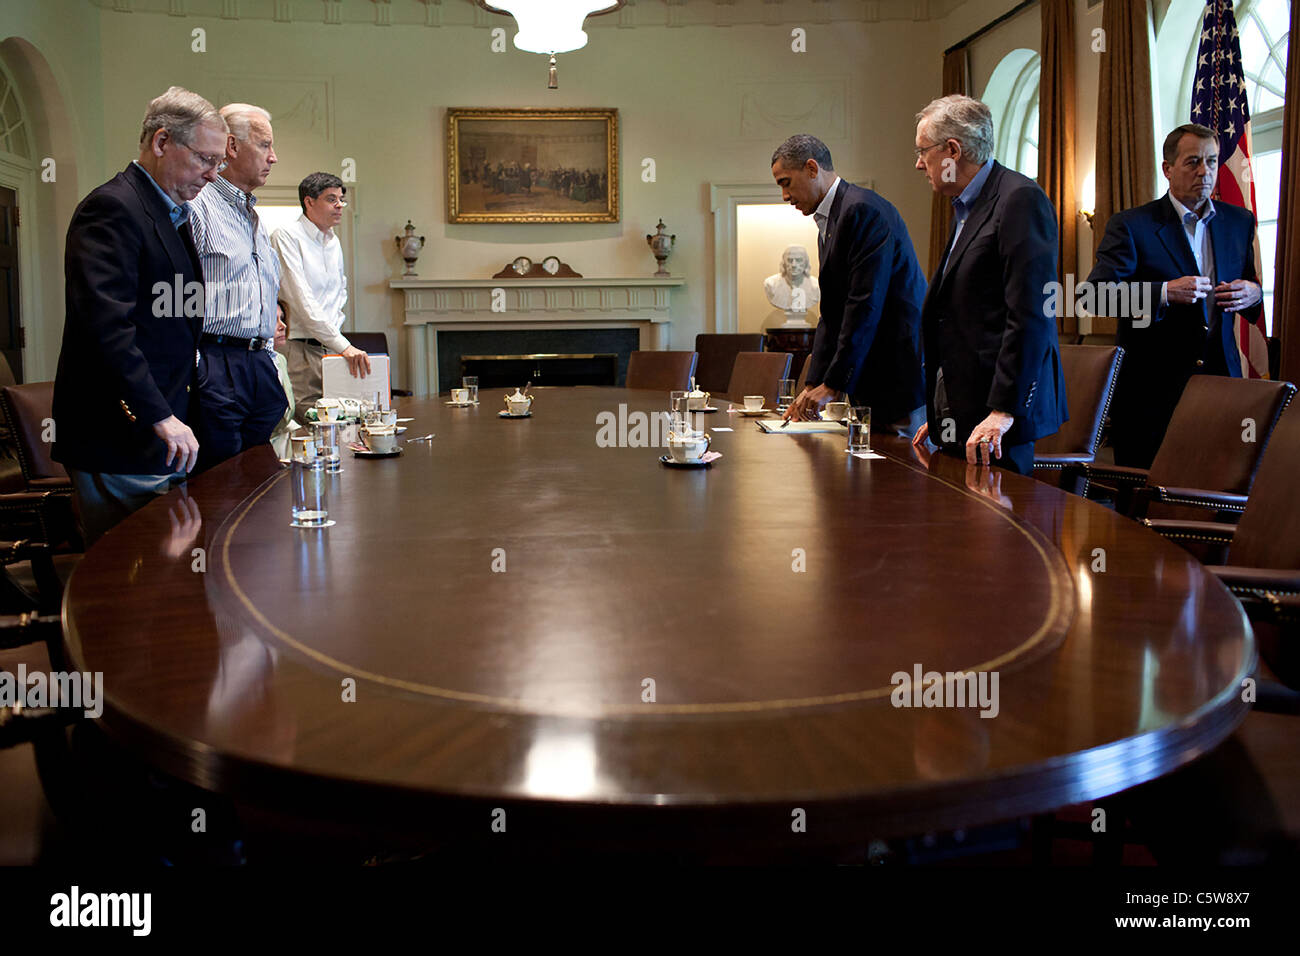 President Barack Obama and Vice President Joe Biden meet with Congressional leaders on the debt crisis - Stock Image